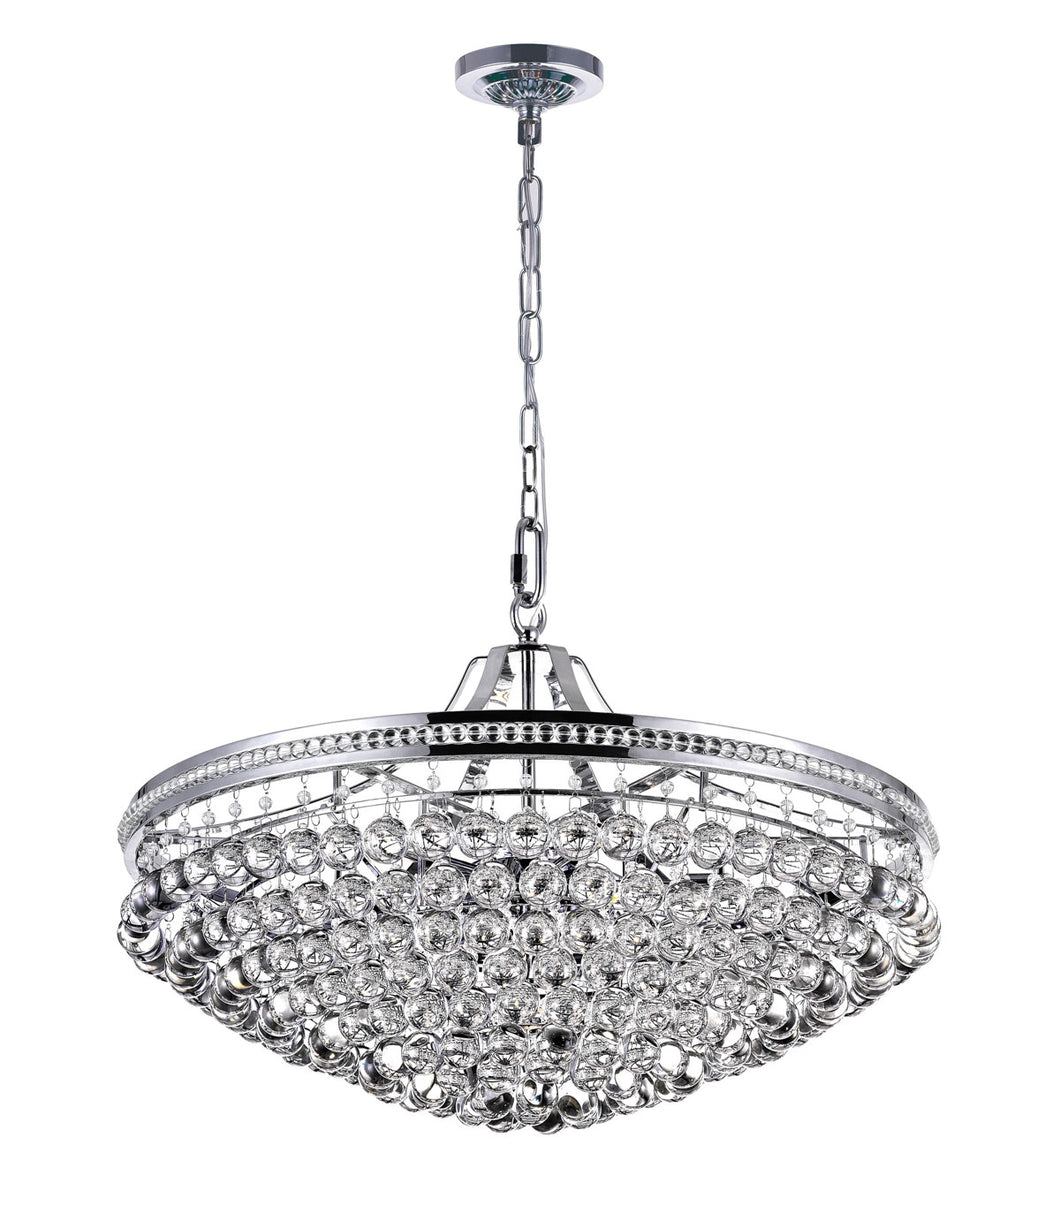 13 Light Chandelier with Chrome Finish